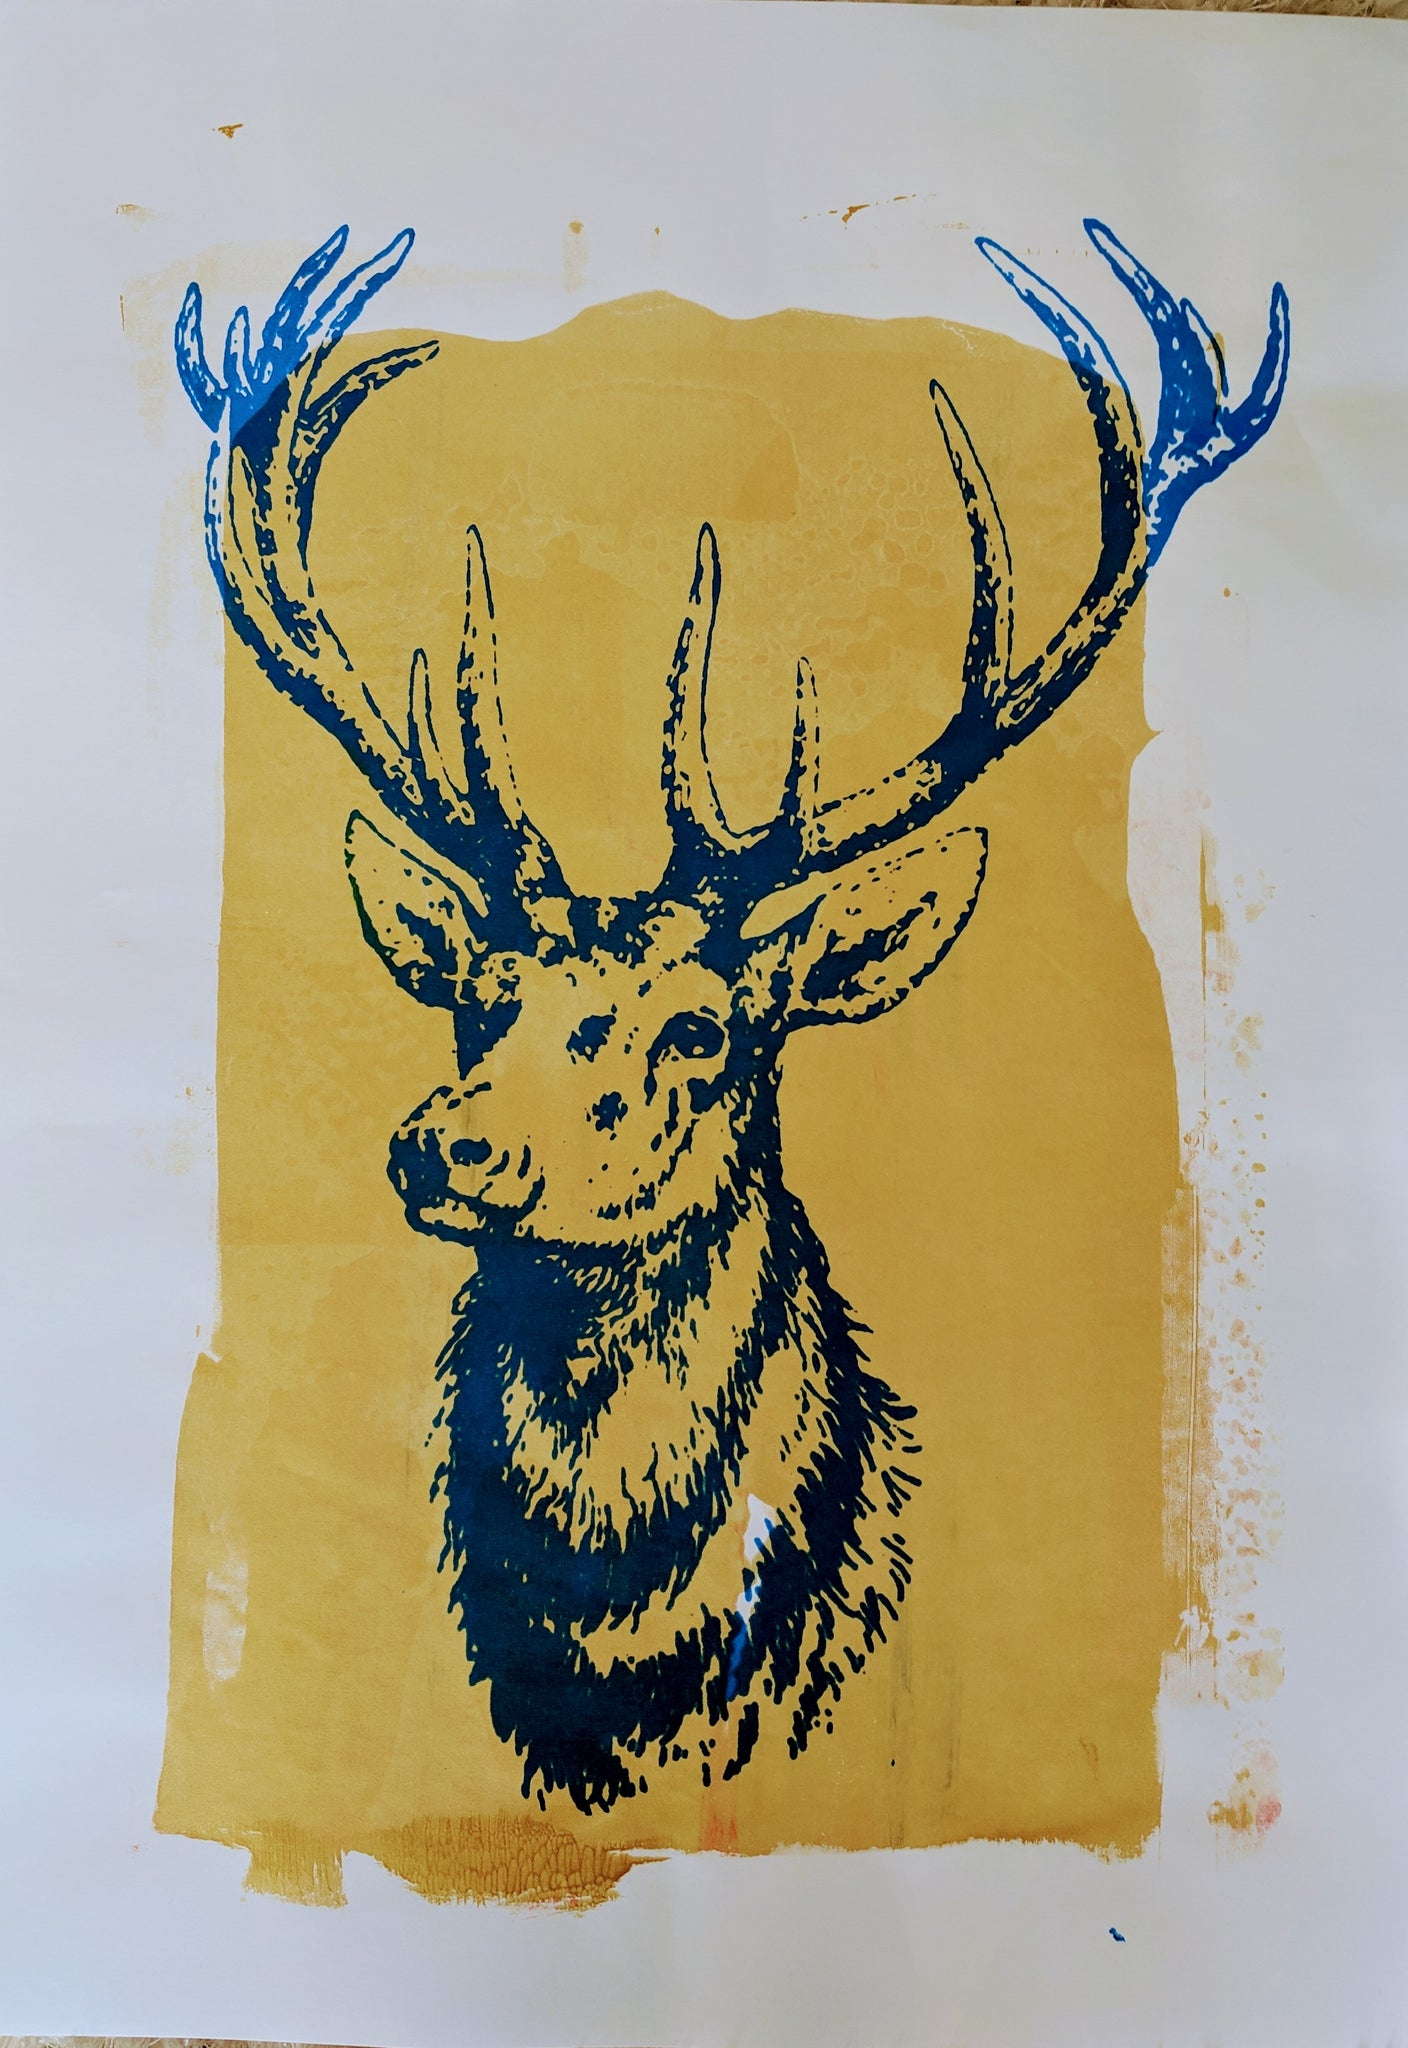 Original STAG screen print by Paul McNeil - A2 size - Junk Art Design @junkartdesign www.junkartdesign.co.uk